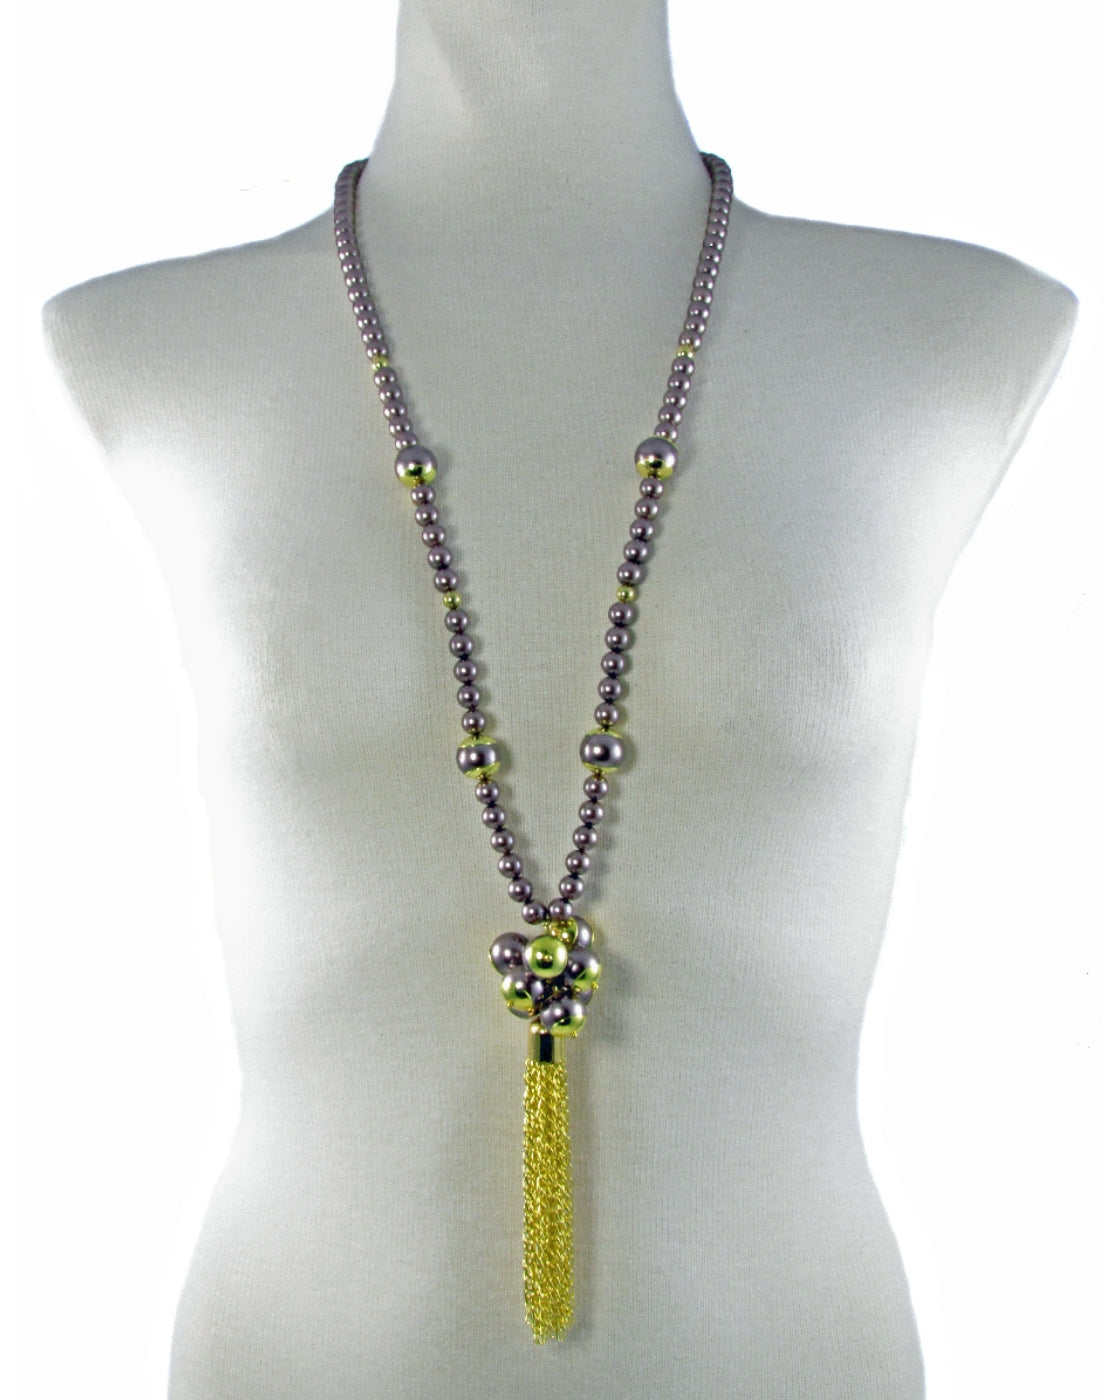 VASIA-Brown pearl long Necklace with Tassel -maria-moyseos